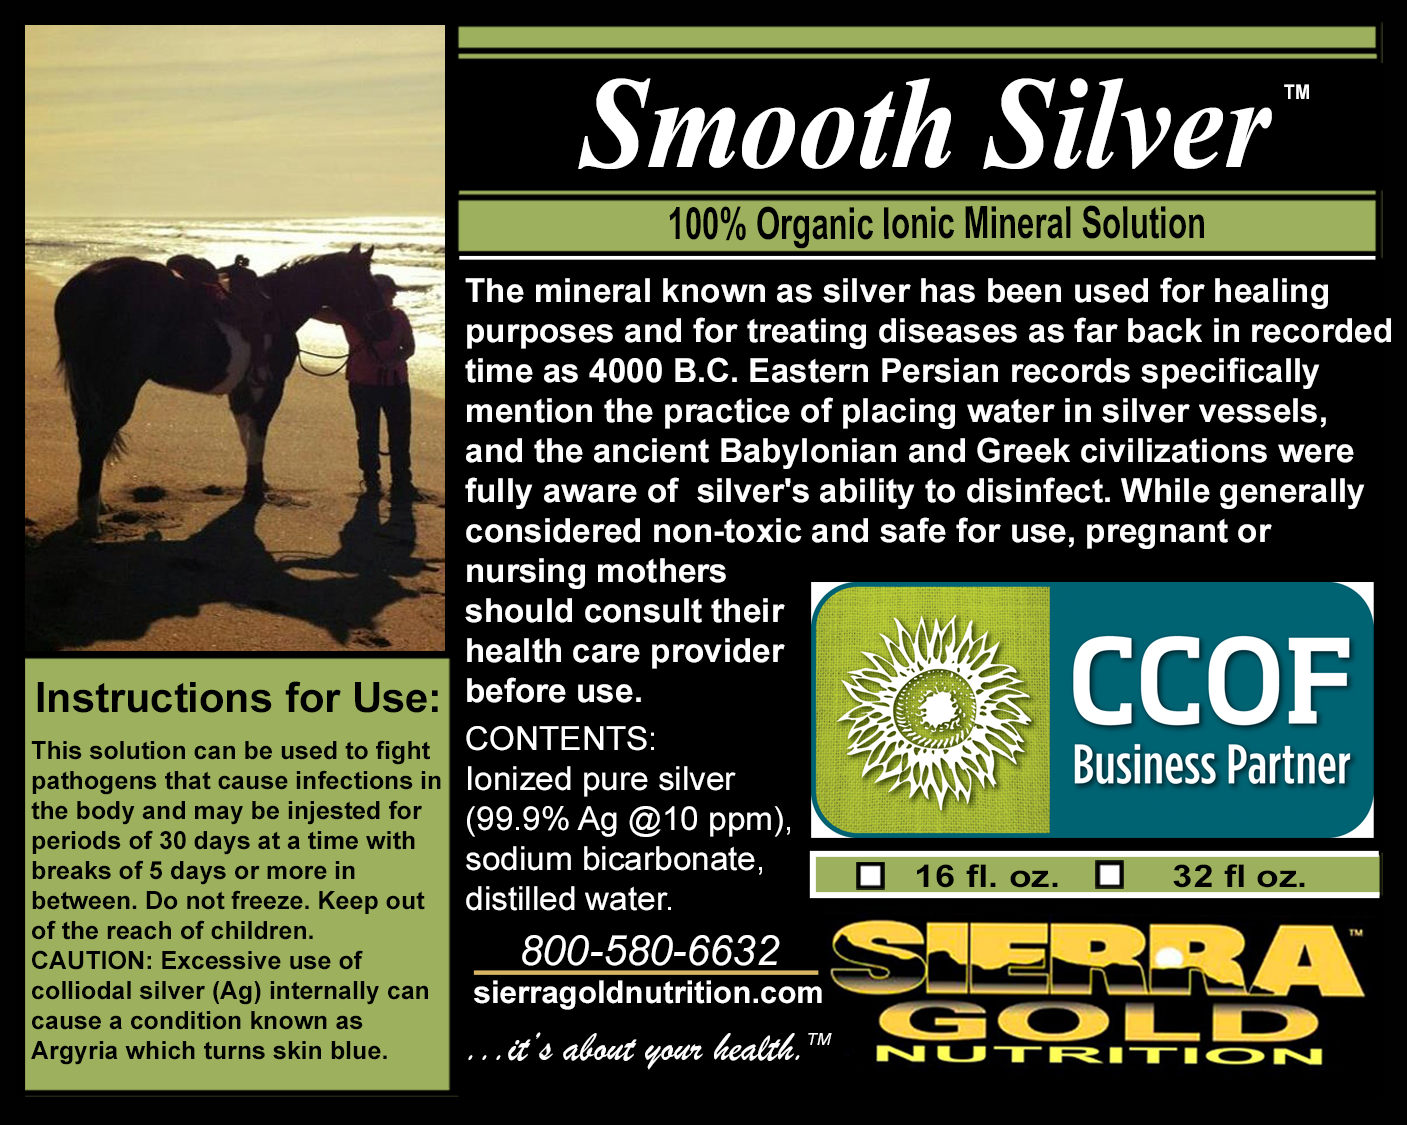 Smooth Silver 100% Organic Ionic Mineral Solution